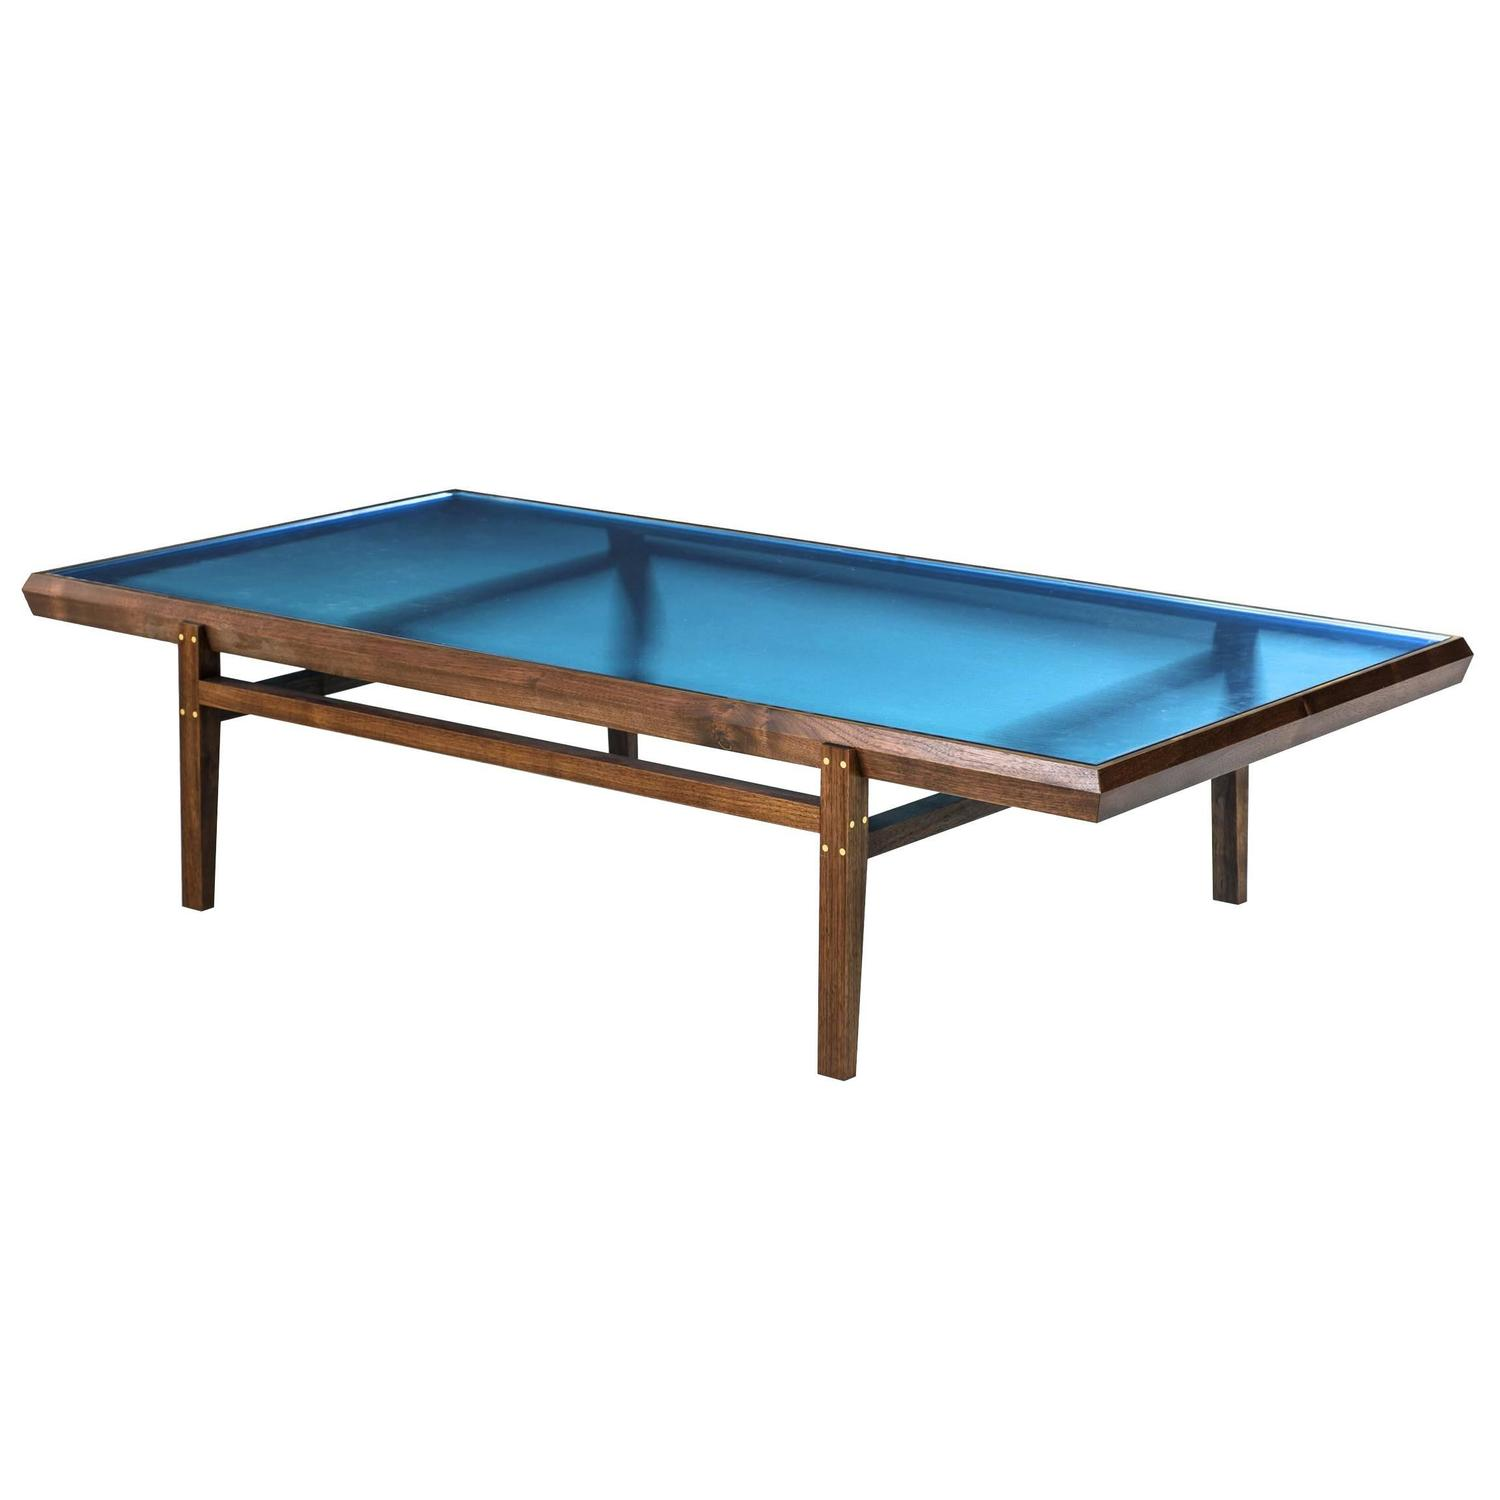 Pintor Coffee Table Walnut Frame with Brass Inlay Blue Glass Top